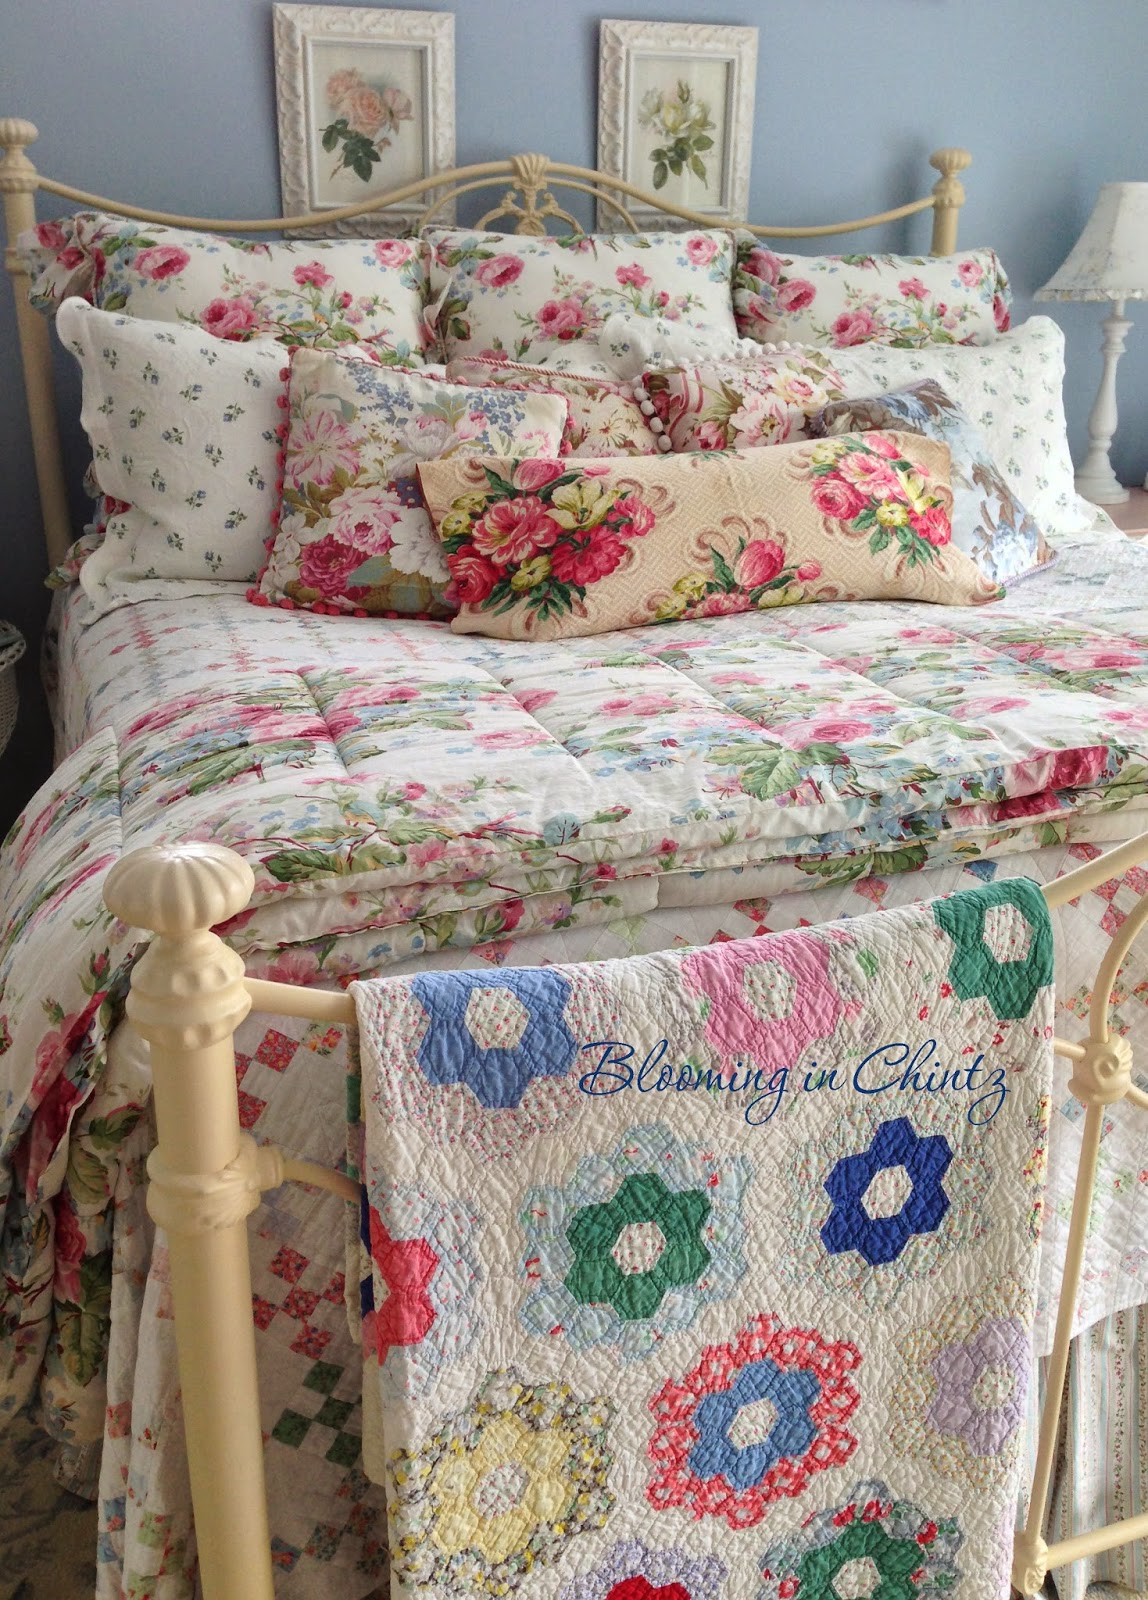 Blooming In Chintz: Bedroom Decorating